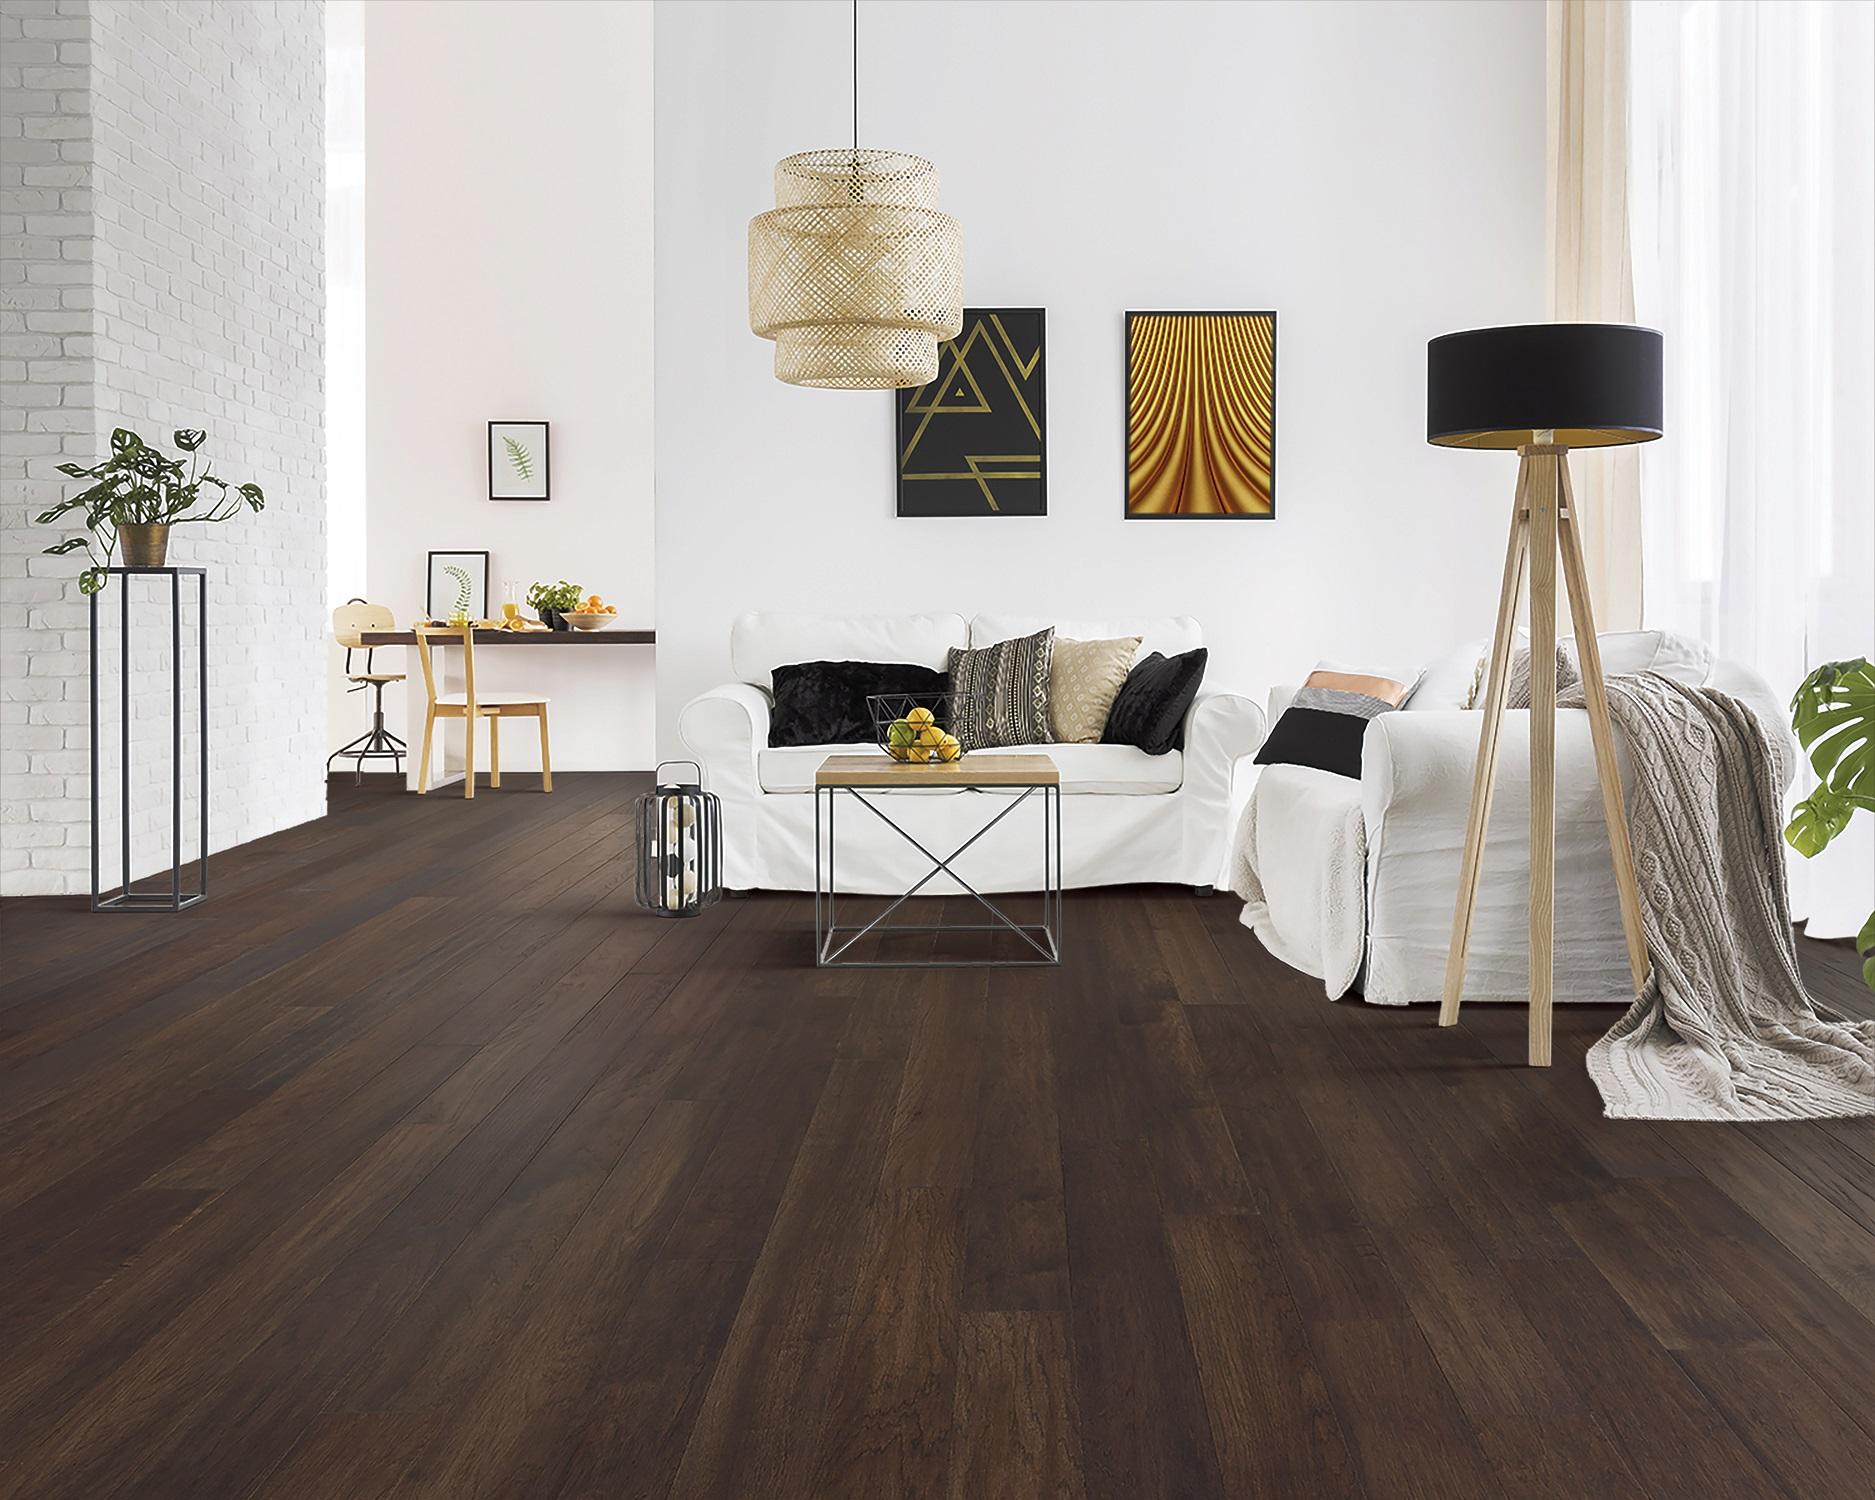 Hardwood flooring in a Lebanon, PA home from Home Improvement Outlet